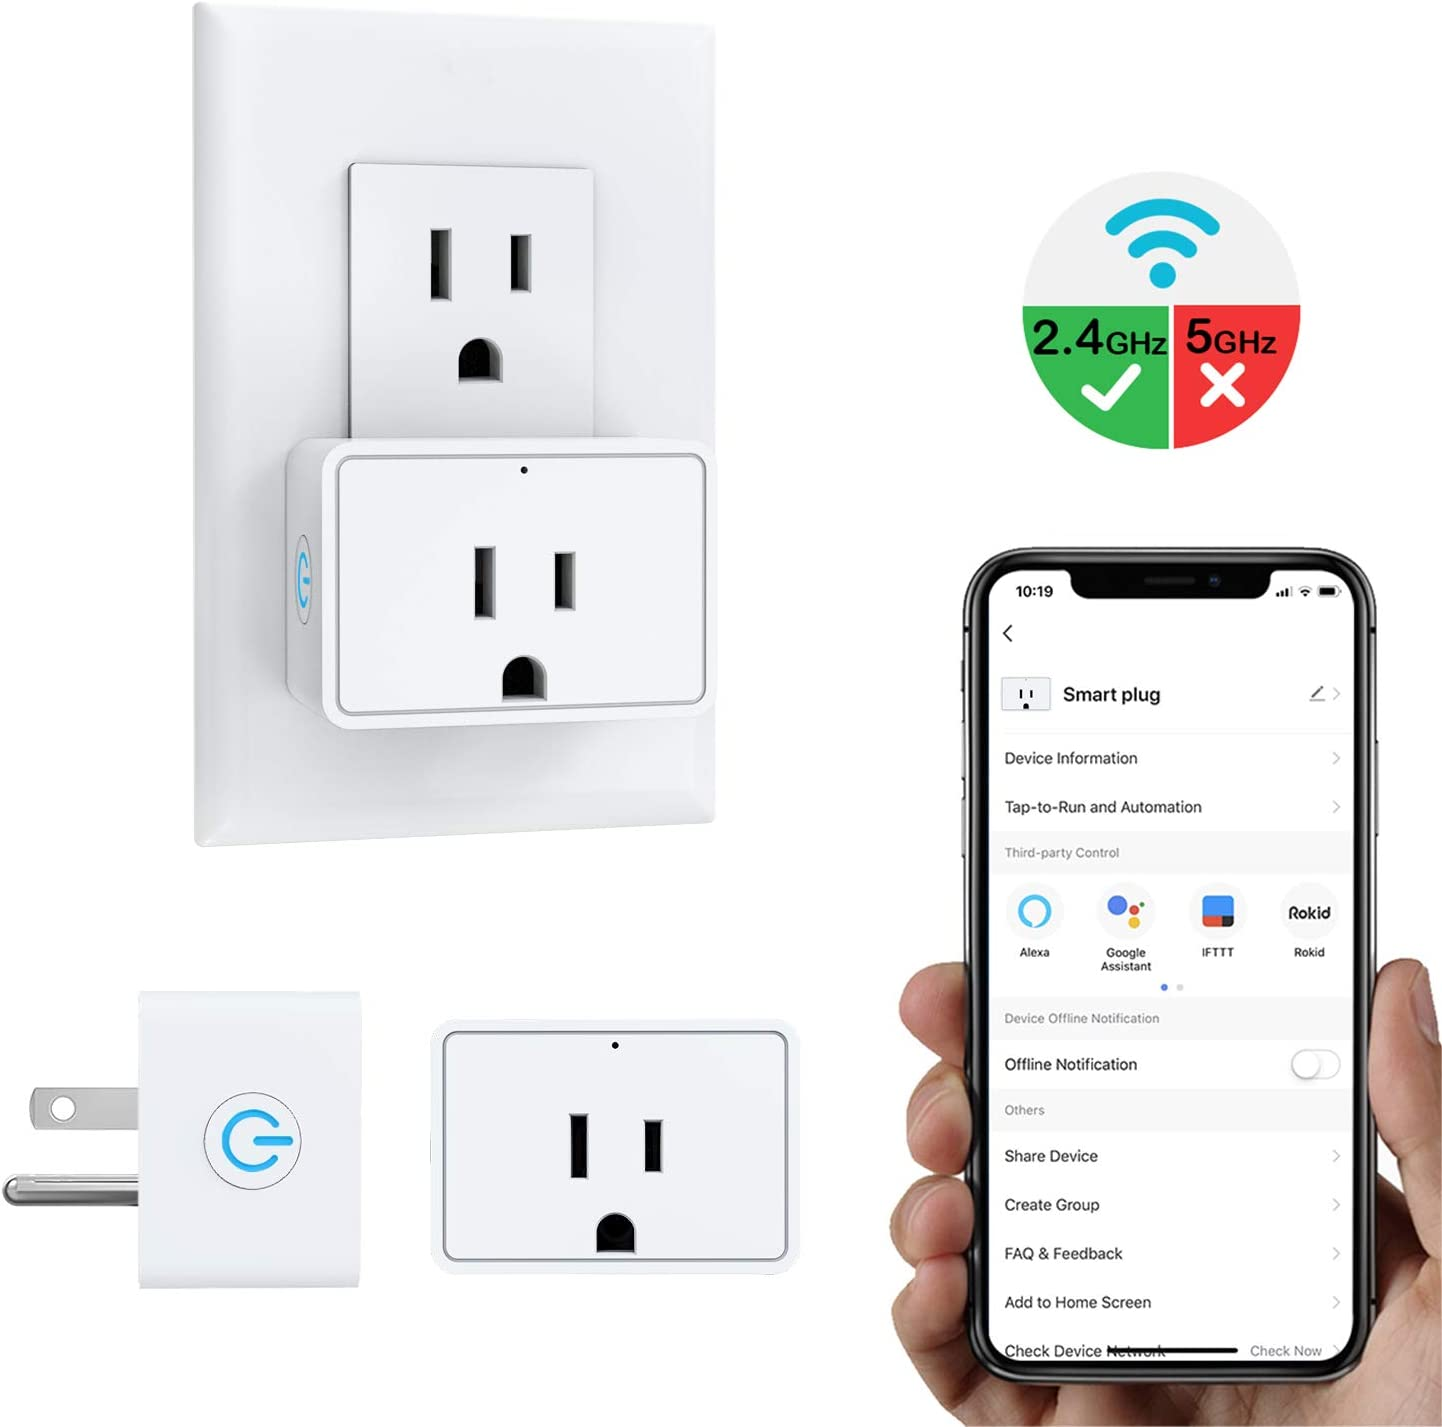 MoKo Smart Plug Mini WiFi Outlet, Work with Alexa/Google Home/IFTTT, Voice/Remote Control, Timer Plug, Current Measurement & Monitoring, 16A, No Hub, Only Supports 2.4GHz Network, White